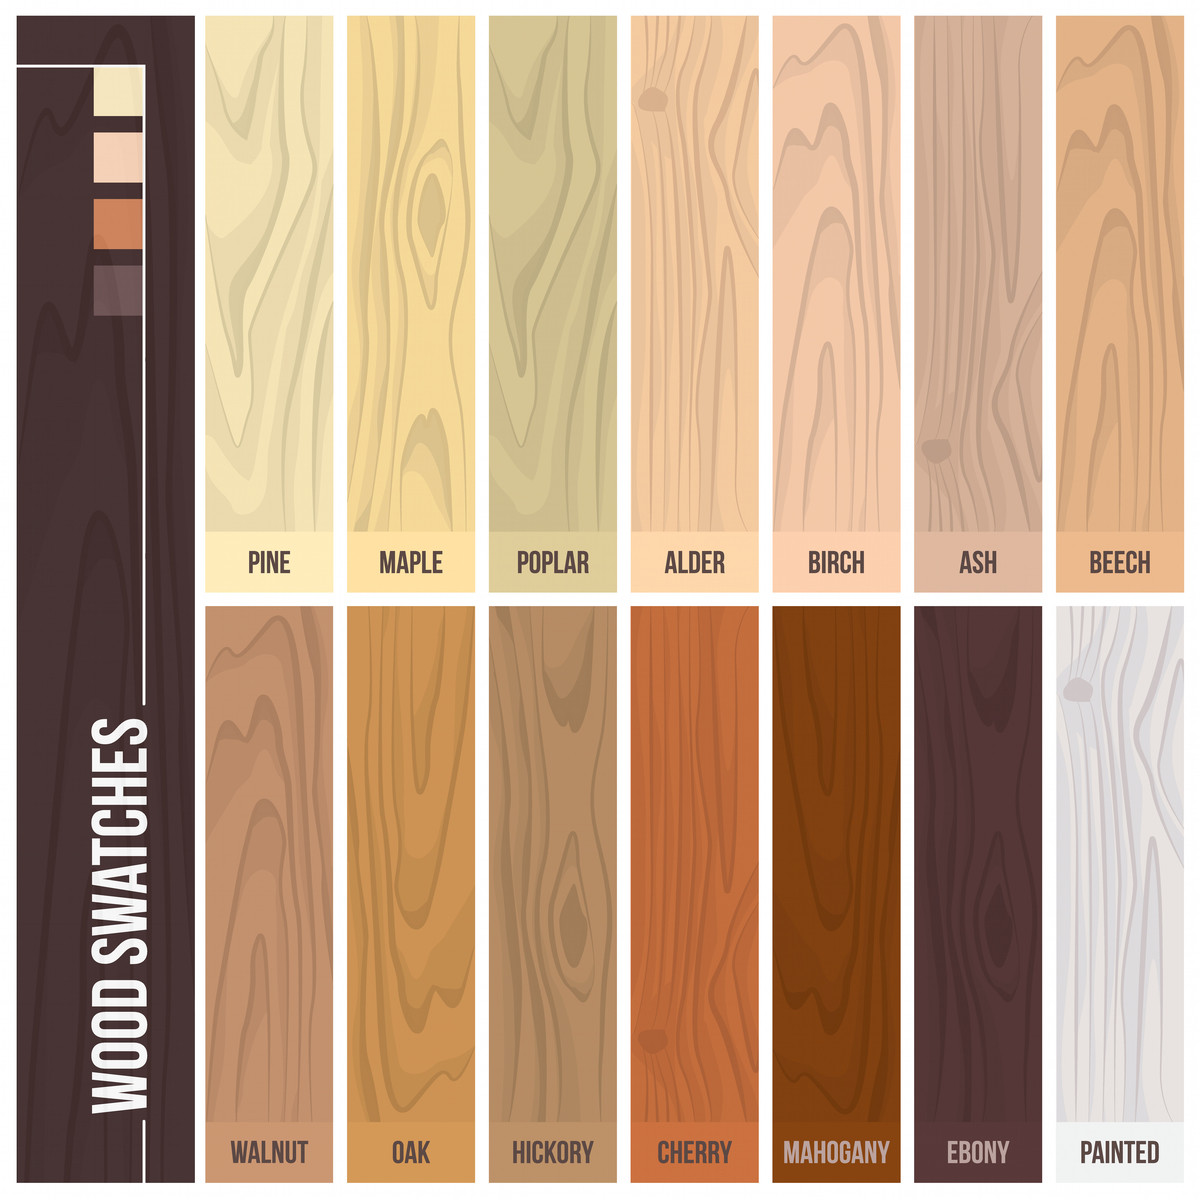 1 Common Red Oak Hardwood Flooring Of 12 Types Of Hardwood Flooring Species Styles Edging Dimensions Pertaining to Types Of Hardwood Flooring Illustrated Guide